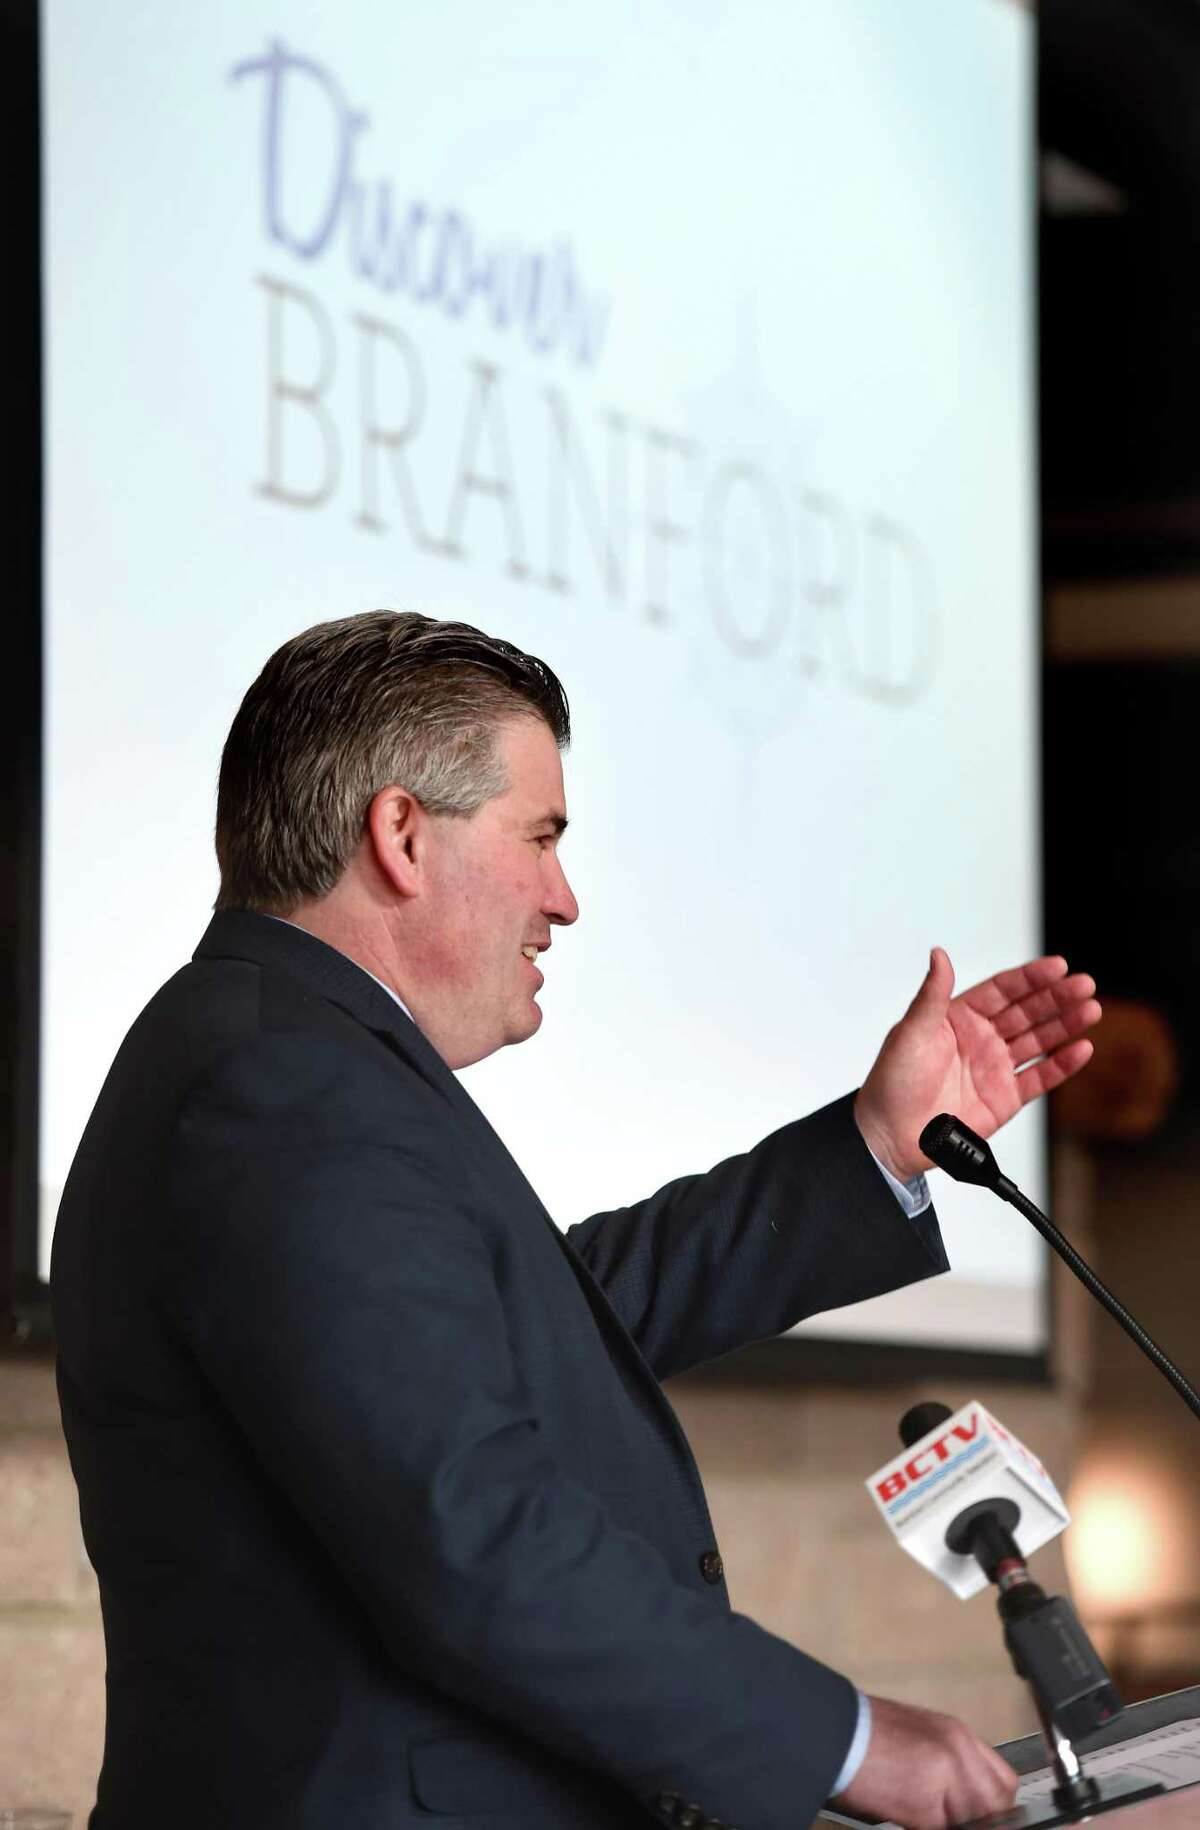 Branford First Selectman James B. Cosgrove delivers the State of the Town address during the 2019 Branford Economic Forum at the Stony Creek Brewery in Branford on March 28, 2019.